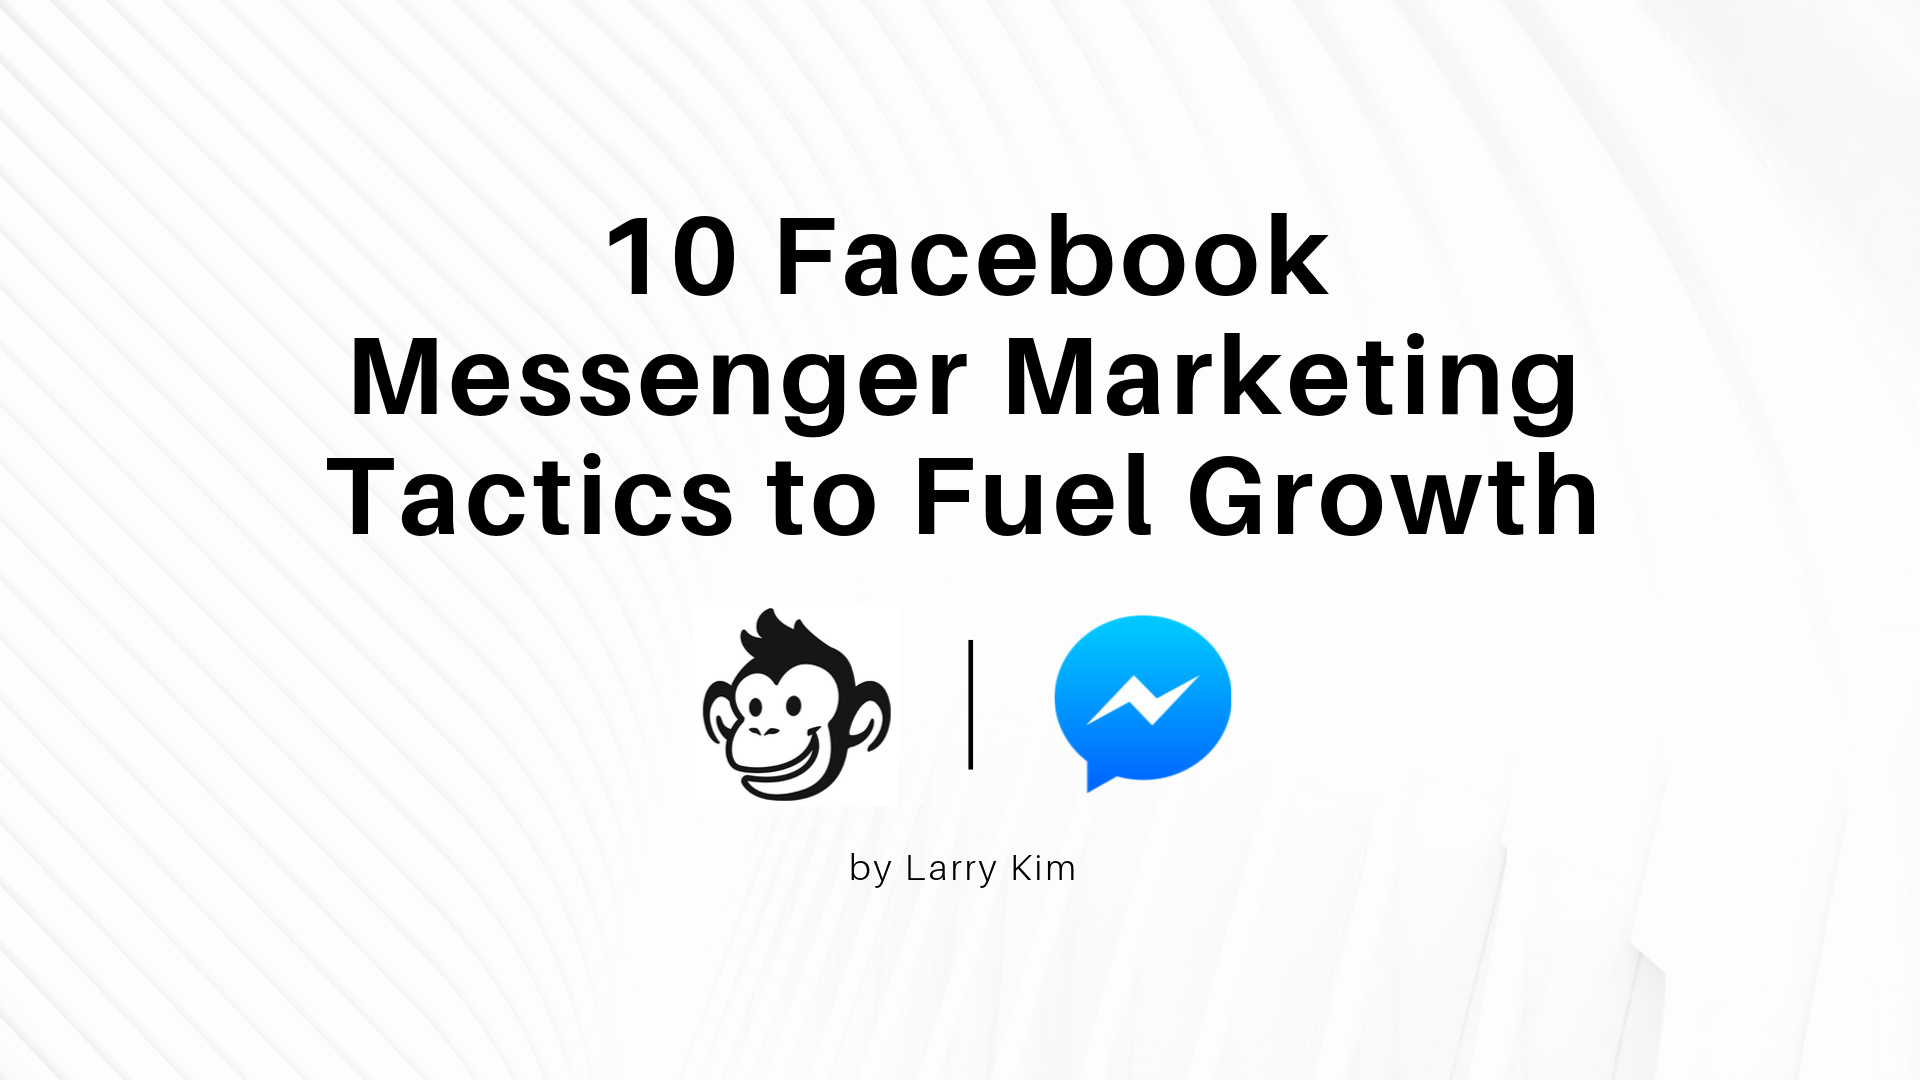 Featured image for 10 Facebook Messenger Marketing Tactics to Fuel Growth